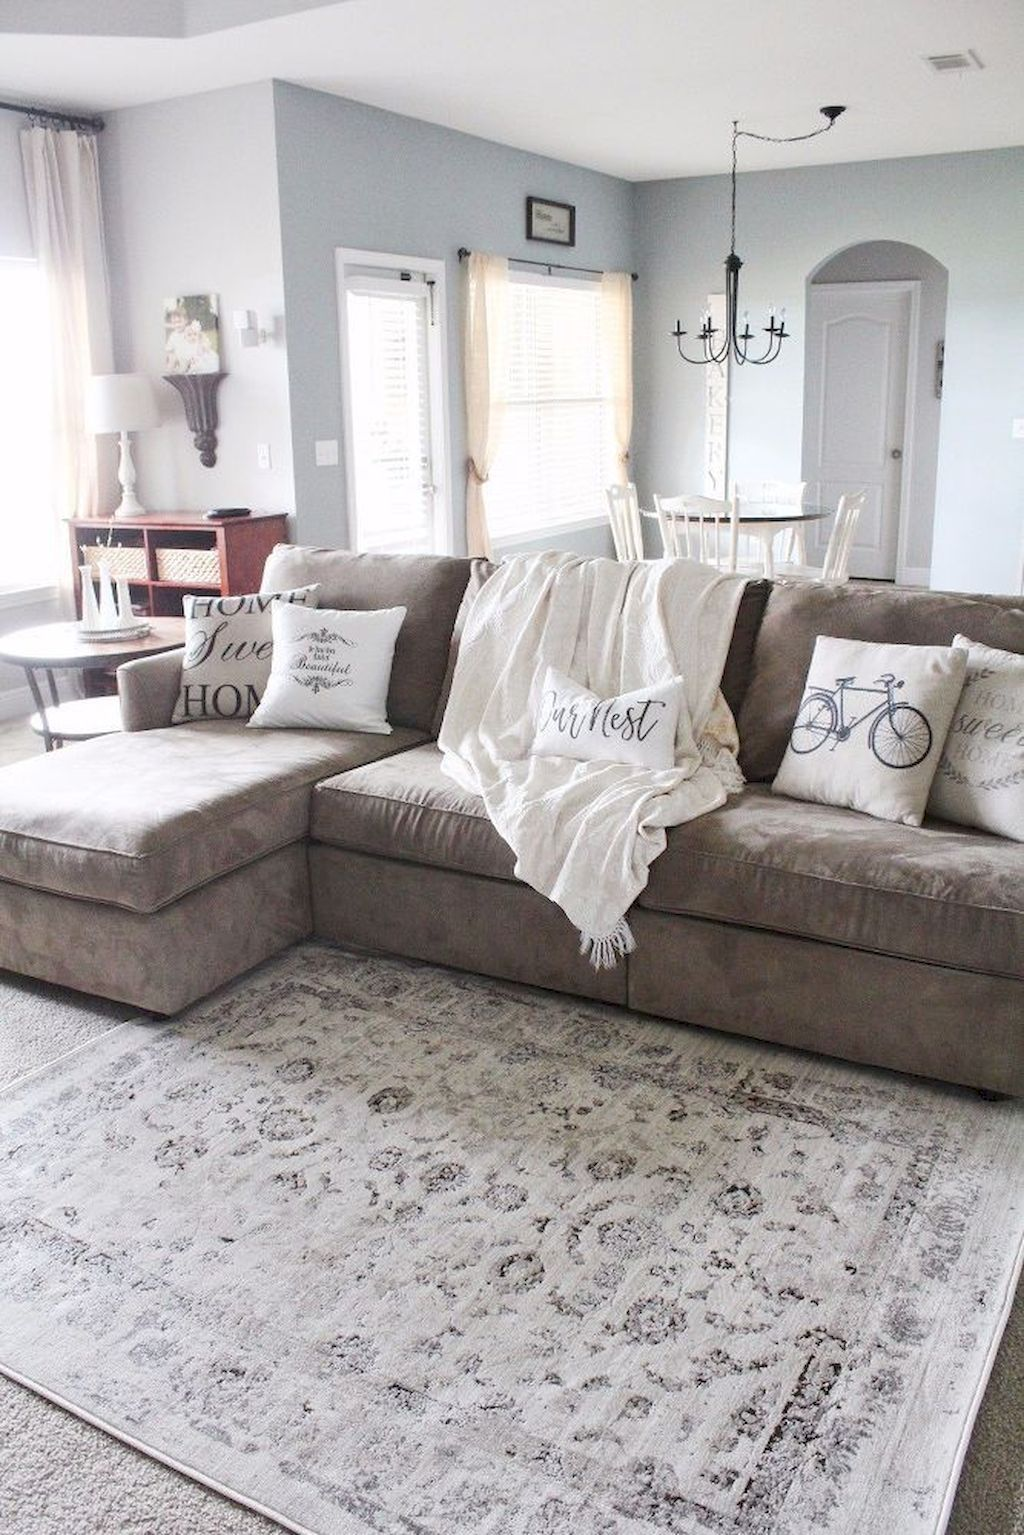 rustic modern living room decor ideas for decorating a long wall farmhouse 35 home